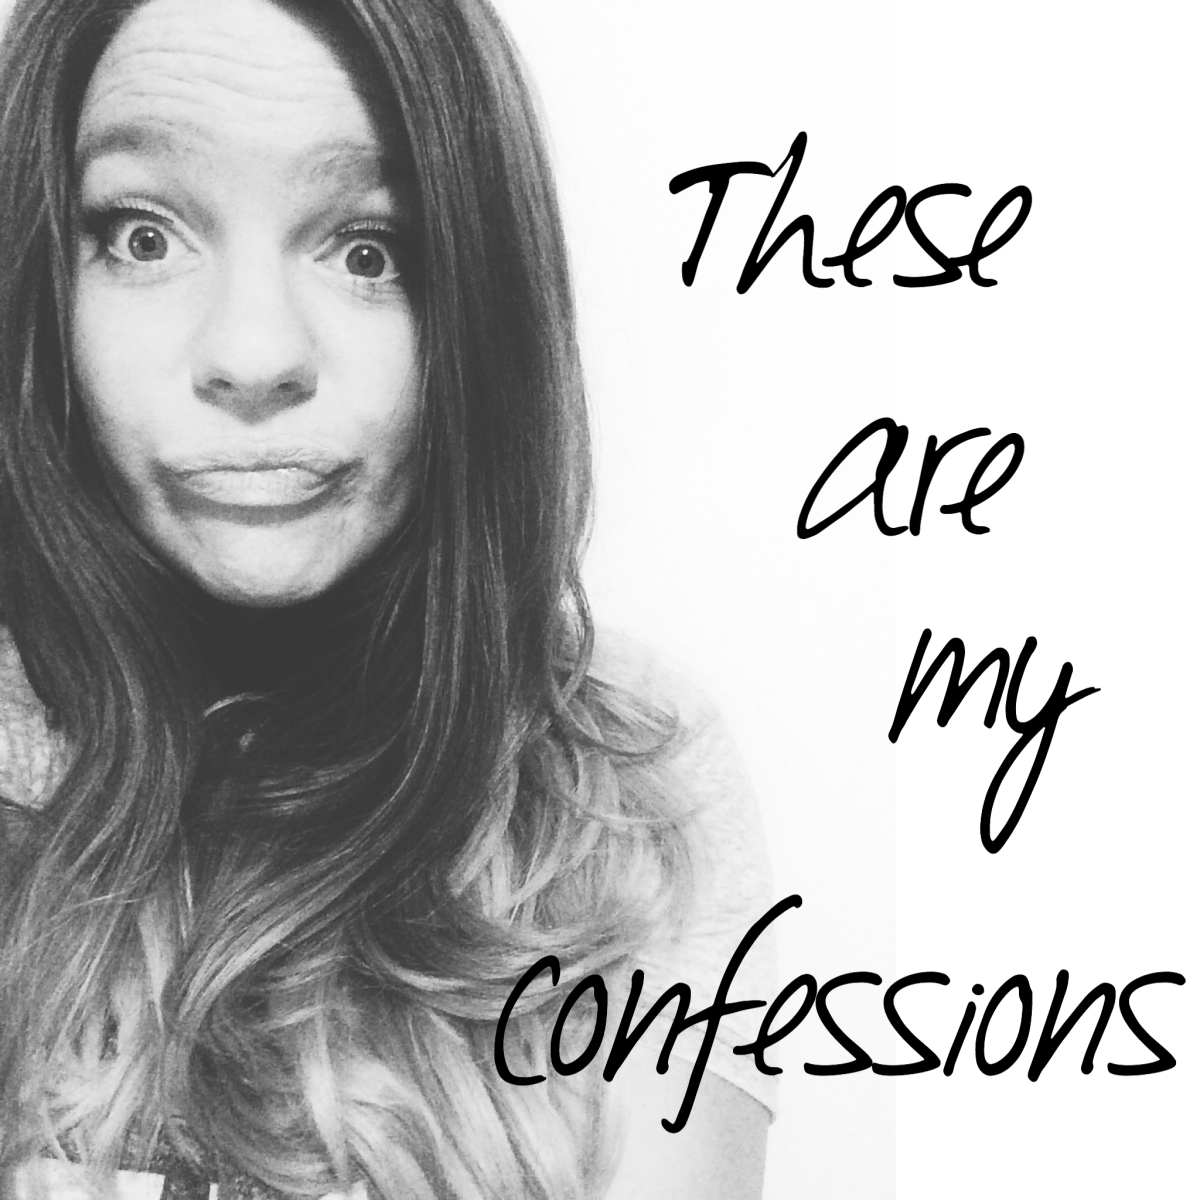 Usher These Are My Confessions These Are My Confessio...